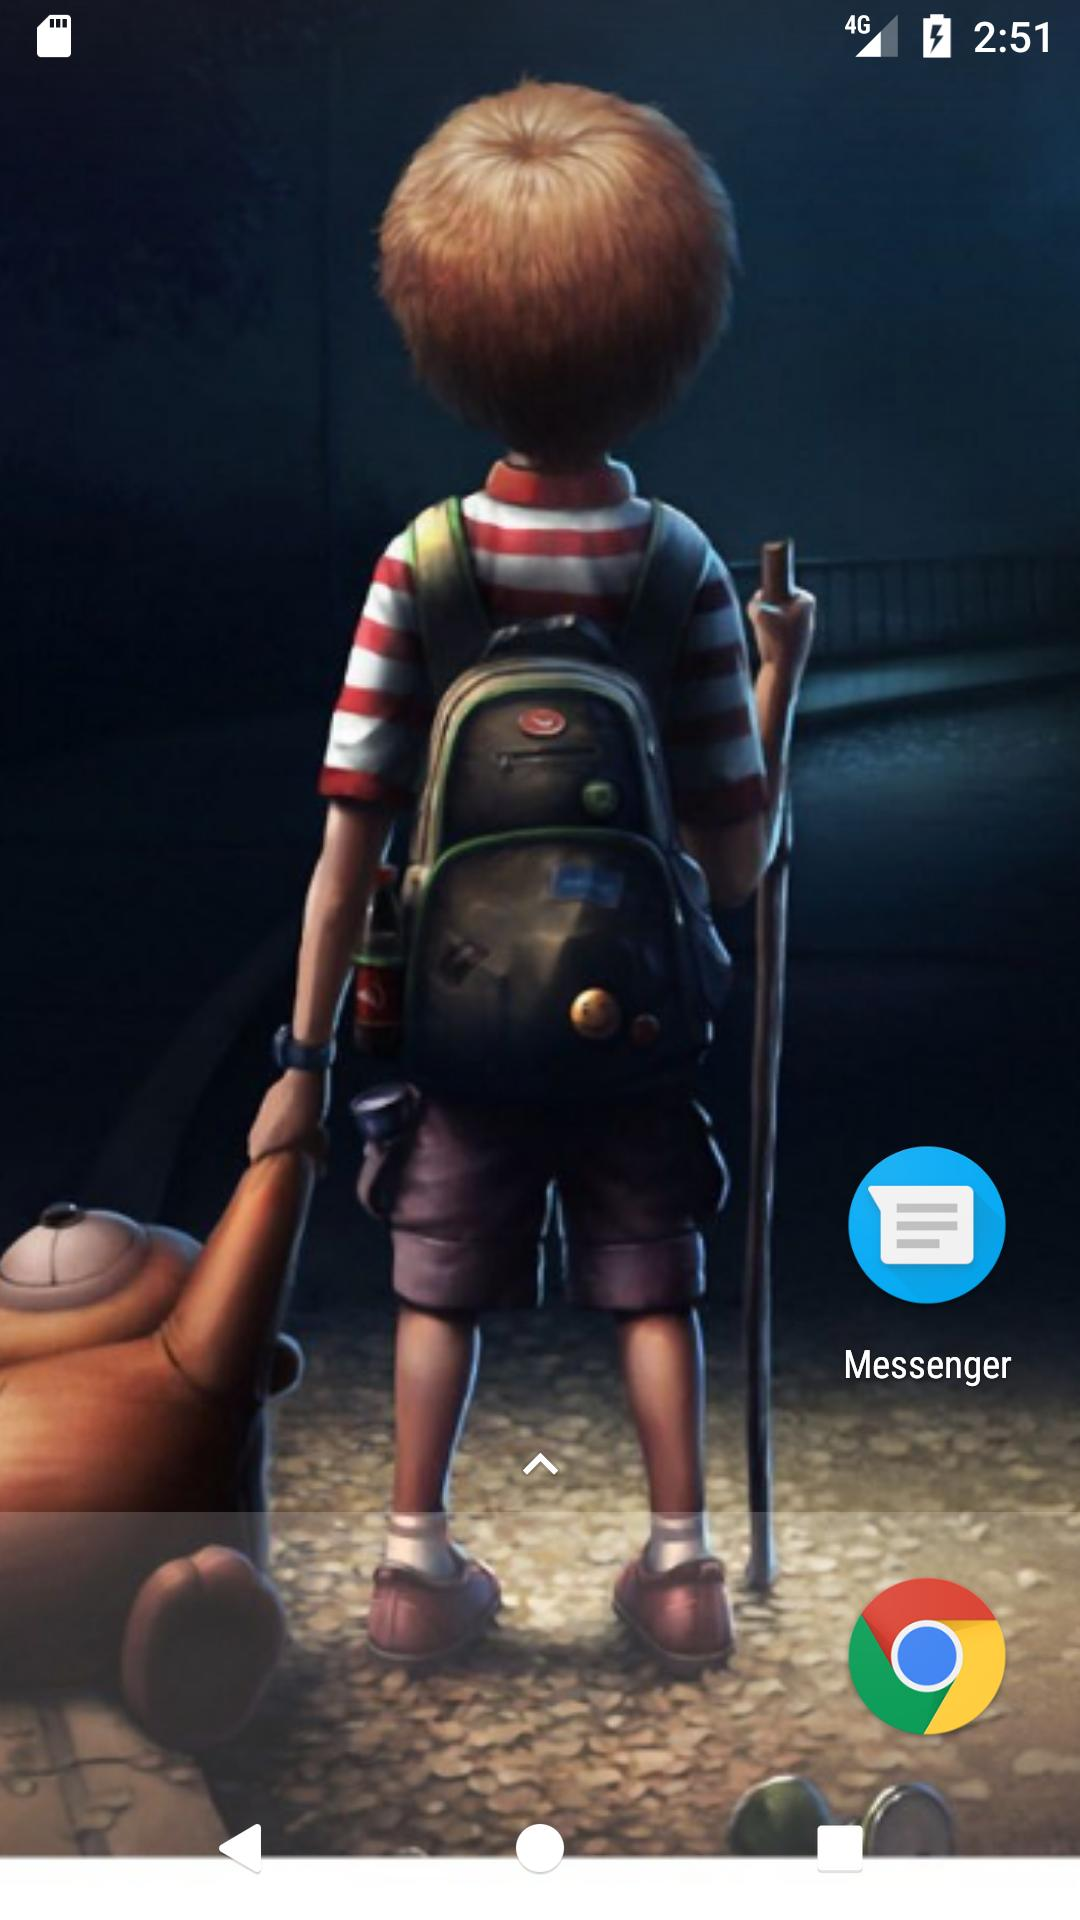 Alone Girl And Boy Hd Free Wallpaper For Android Apk Download